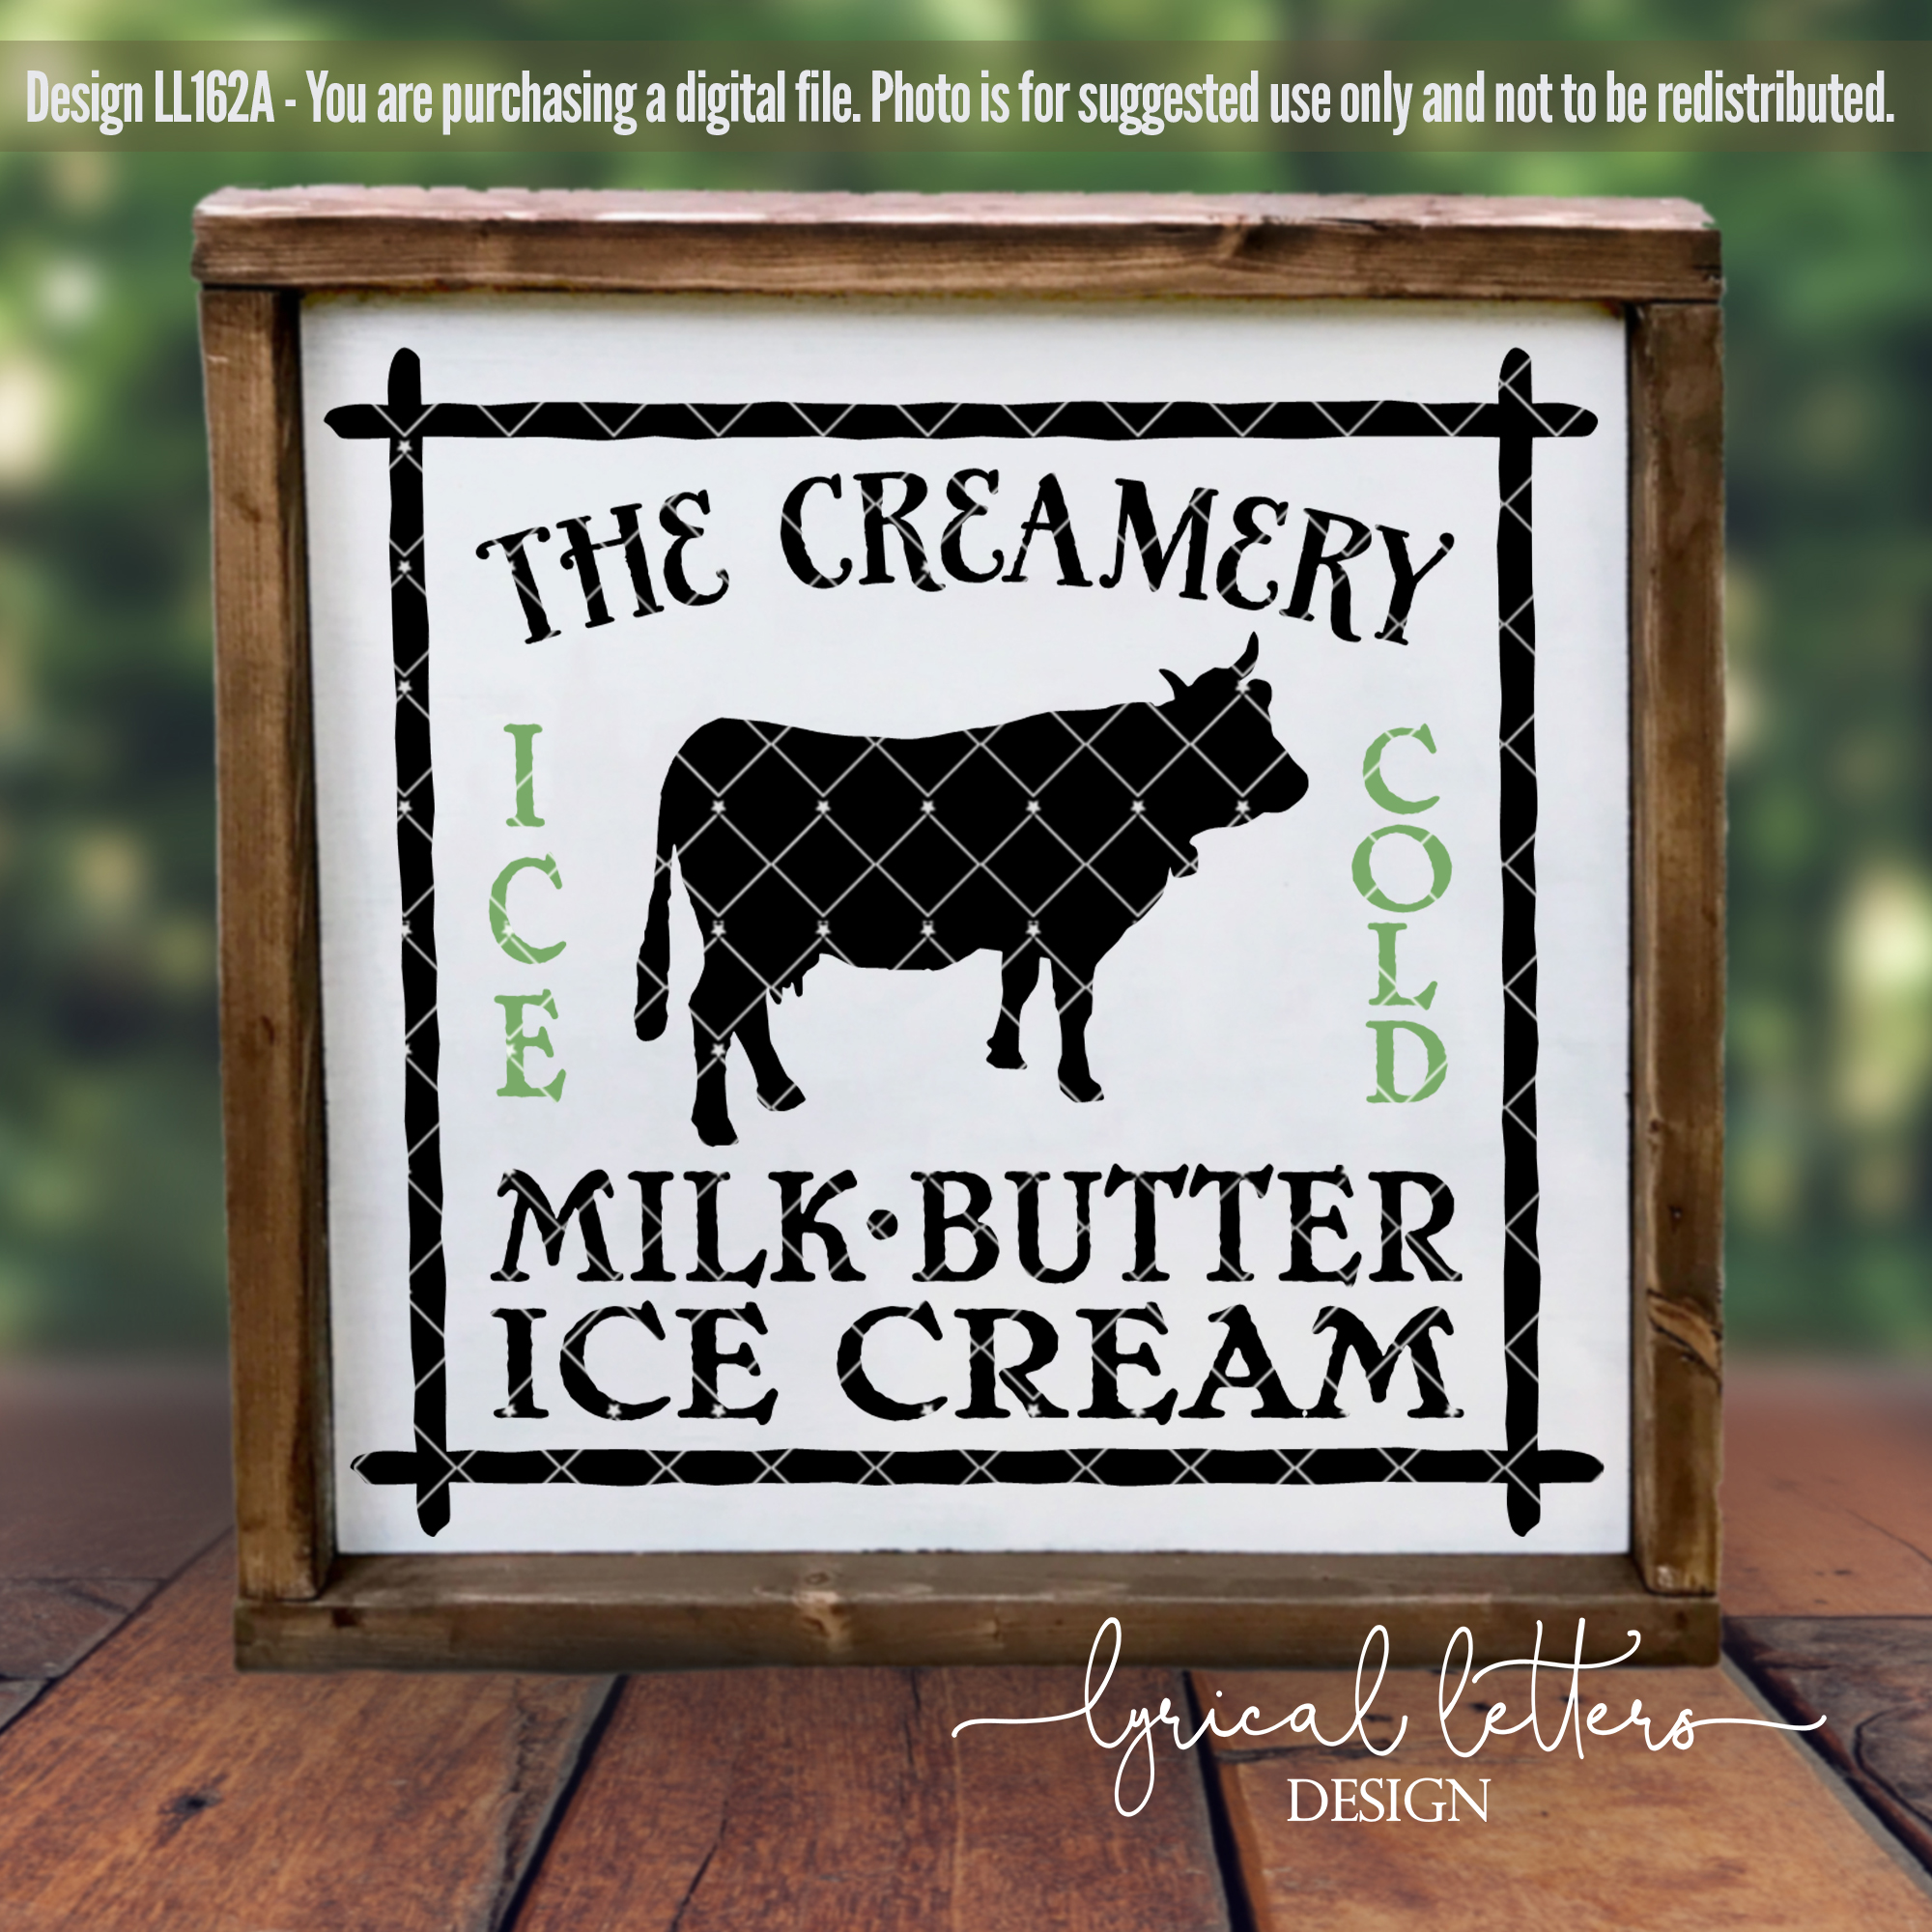 The Creamery with Cow Farmhouse SVG Cut File LL162A example image 2